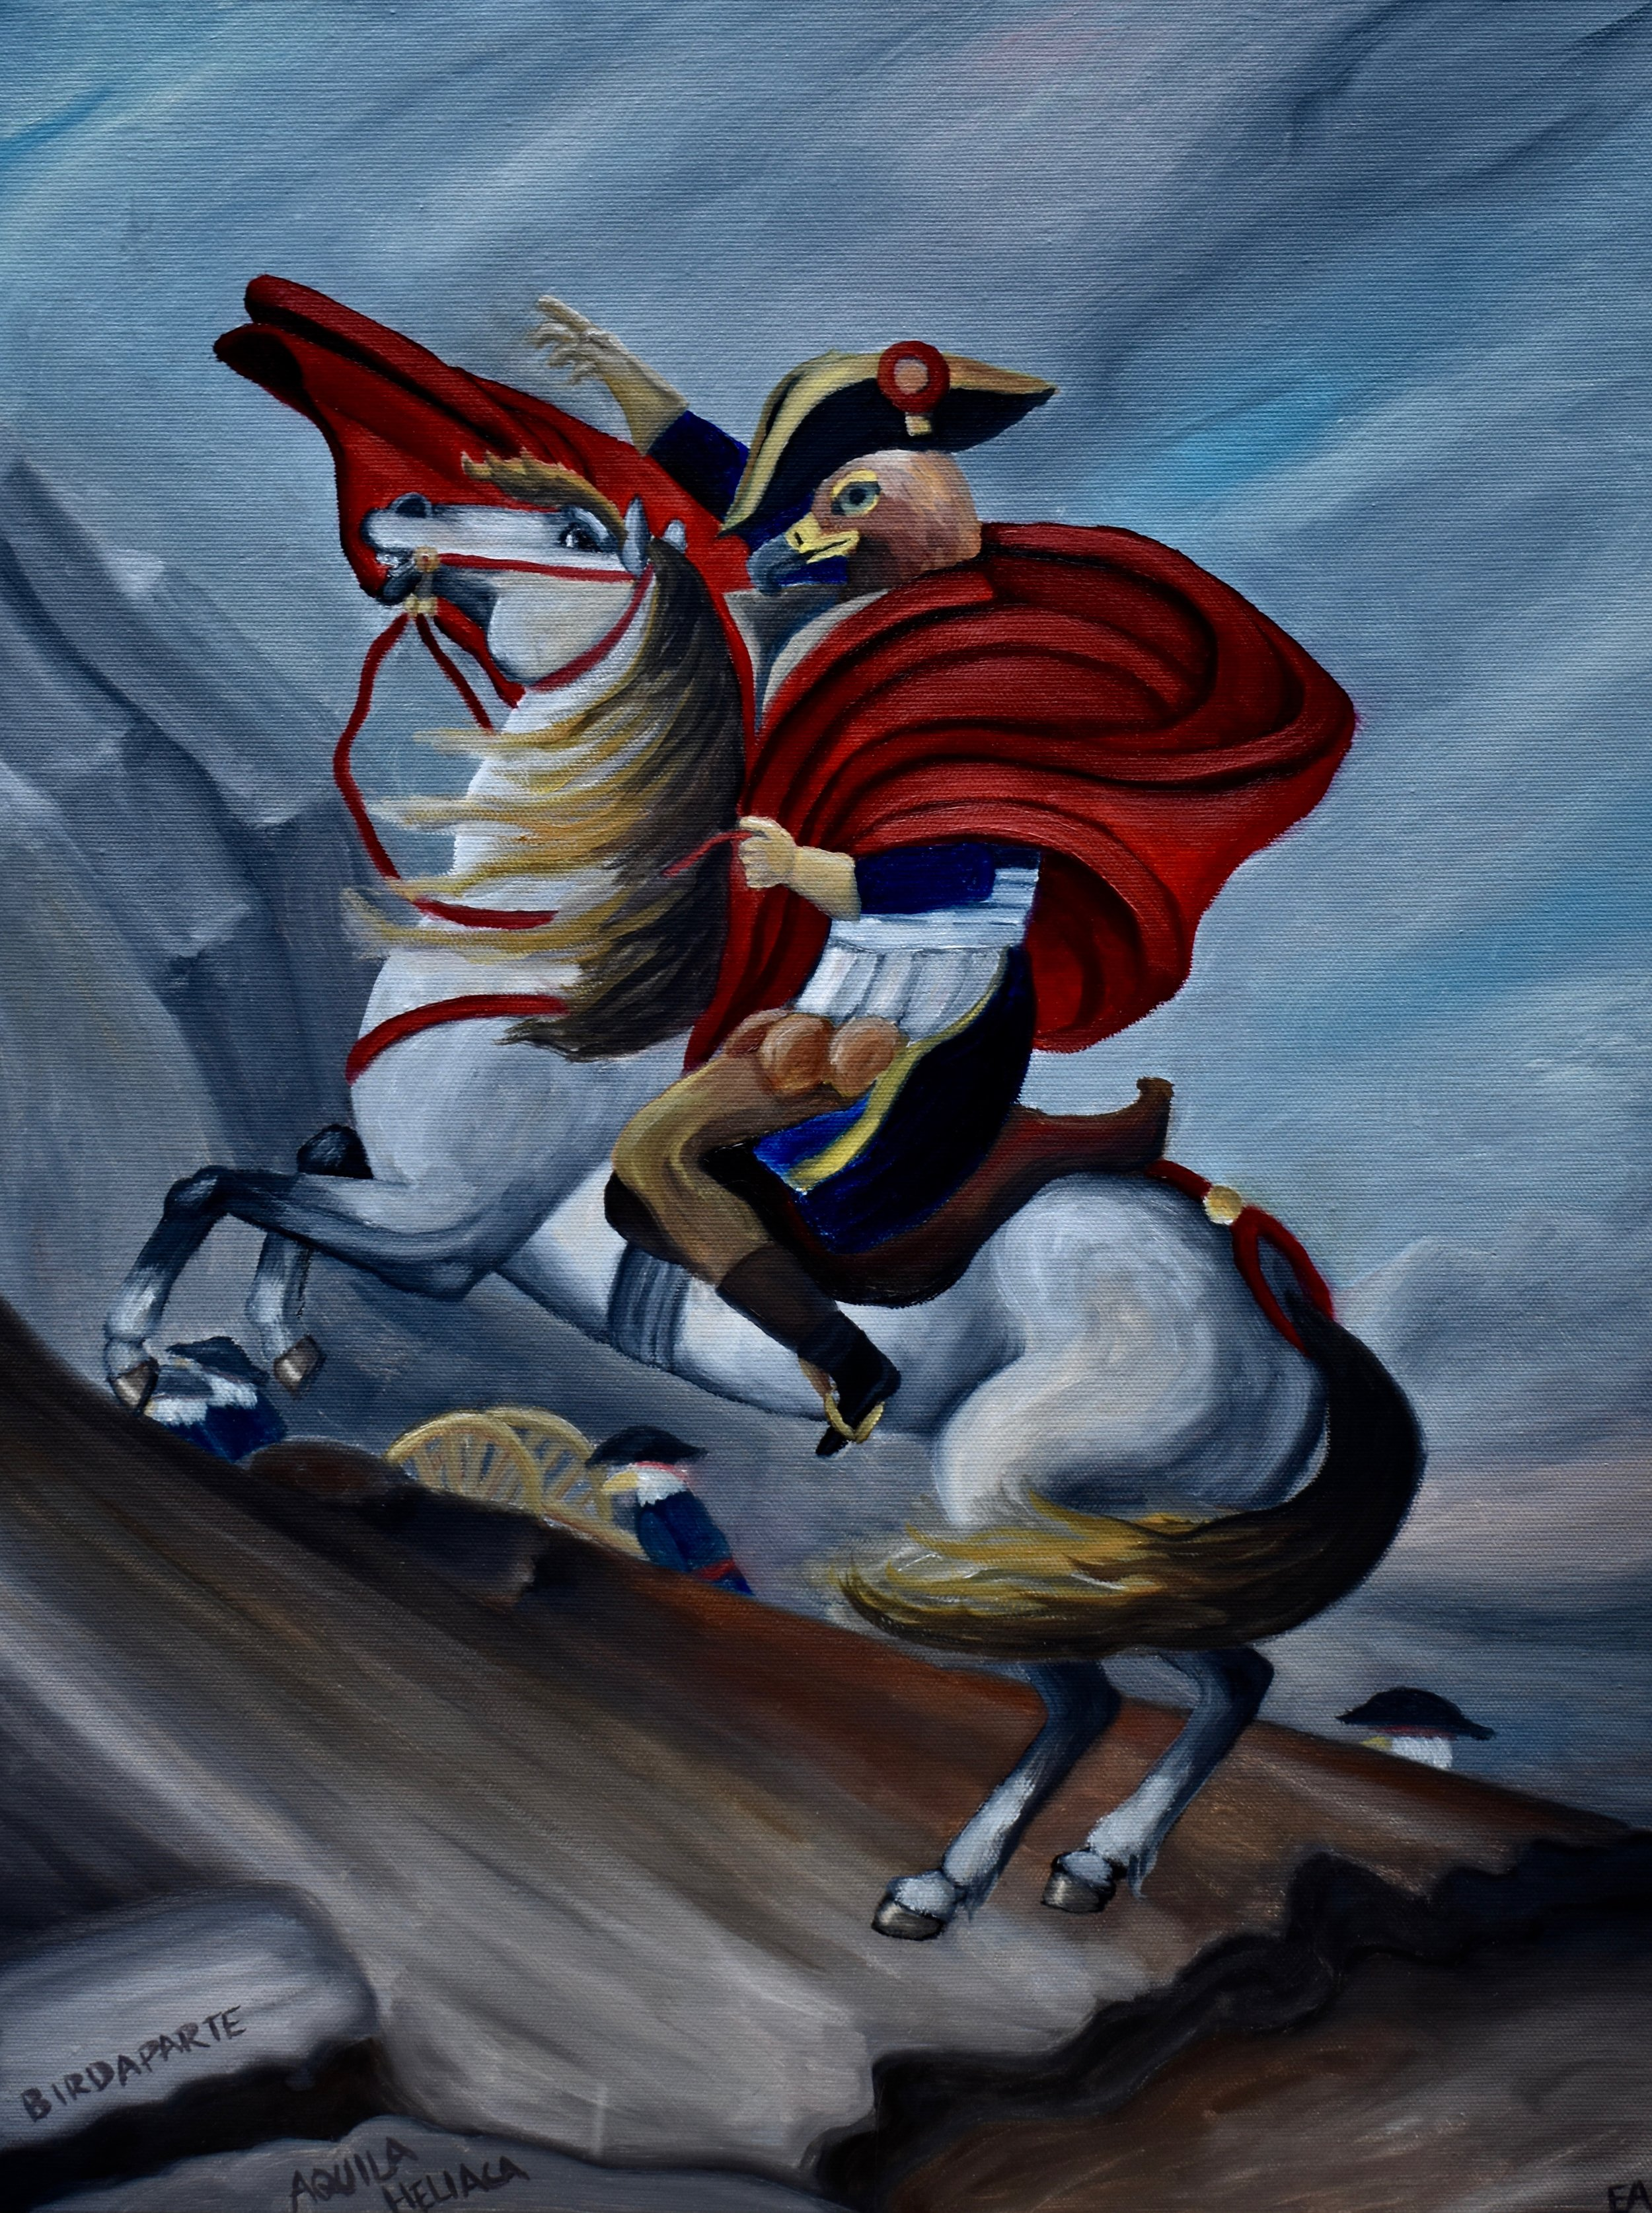 """""""Napoleon Complex"""" 18x24 Oil on Canvas.  Bonaparte assumed the imperial eagle as his avian counterpart and the creature appeared on his coat of arms. His fascination with this bird was most certainly rooted in its association with the powerful Roman Empire. Later, the Nazis also used this bird as a symbol as they plotted their own world domination. Makes me feel rather sorry for the good old imperial eagle, who mostly just likes to be left alone and fed a little hamster snack once in a while.  Painting inspired by: """"Napoleon Crossing the Alps"""" Jacques-Louis David 1801."""